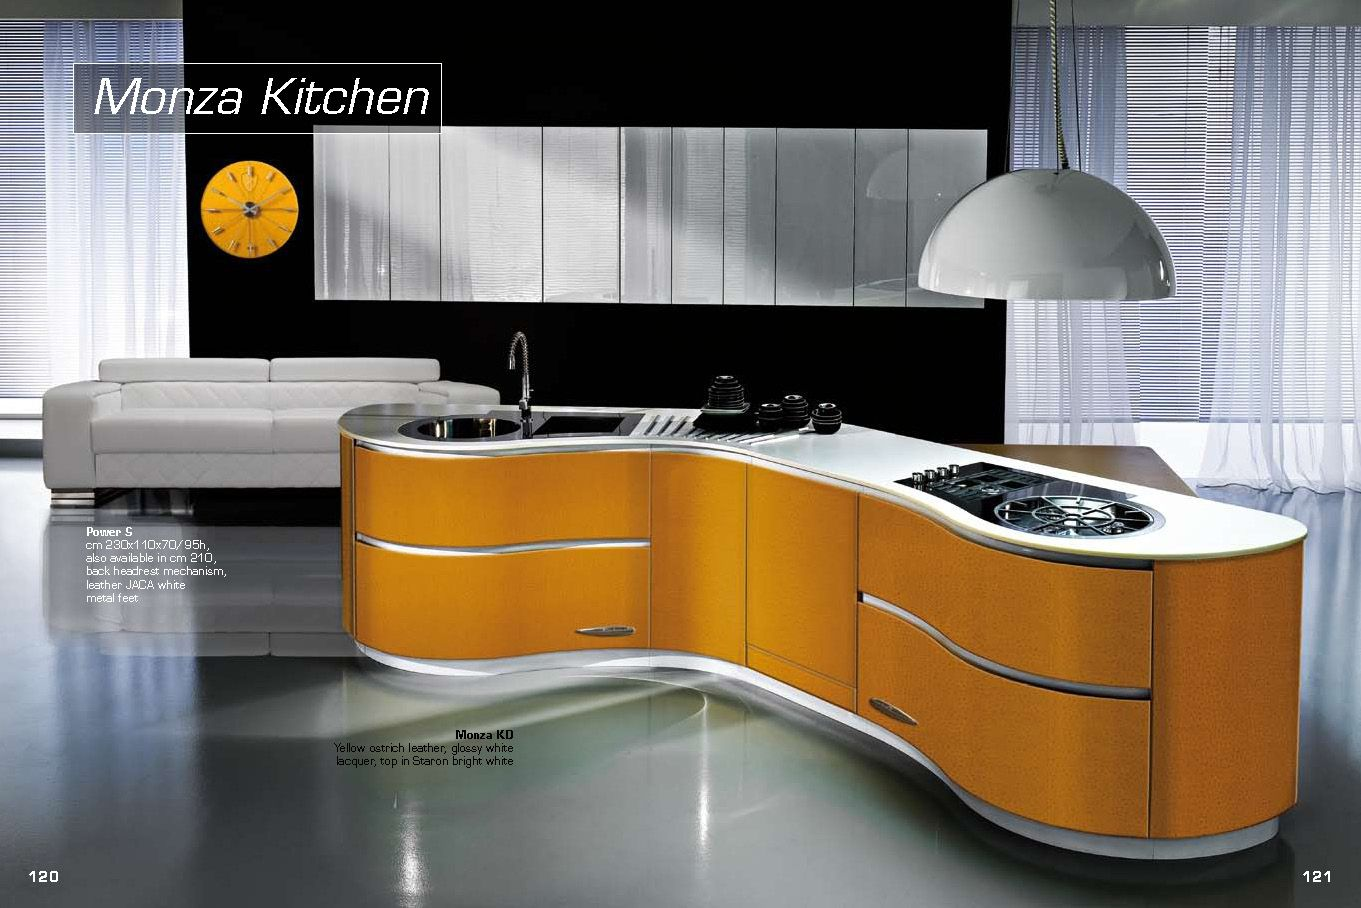 k chen k chen monzadie m bel aus italien. Black Bedroom Furniture Sets. Home Design Ideas